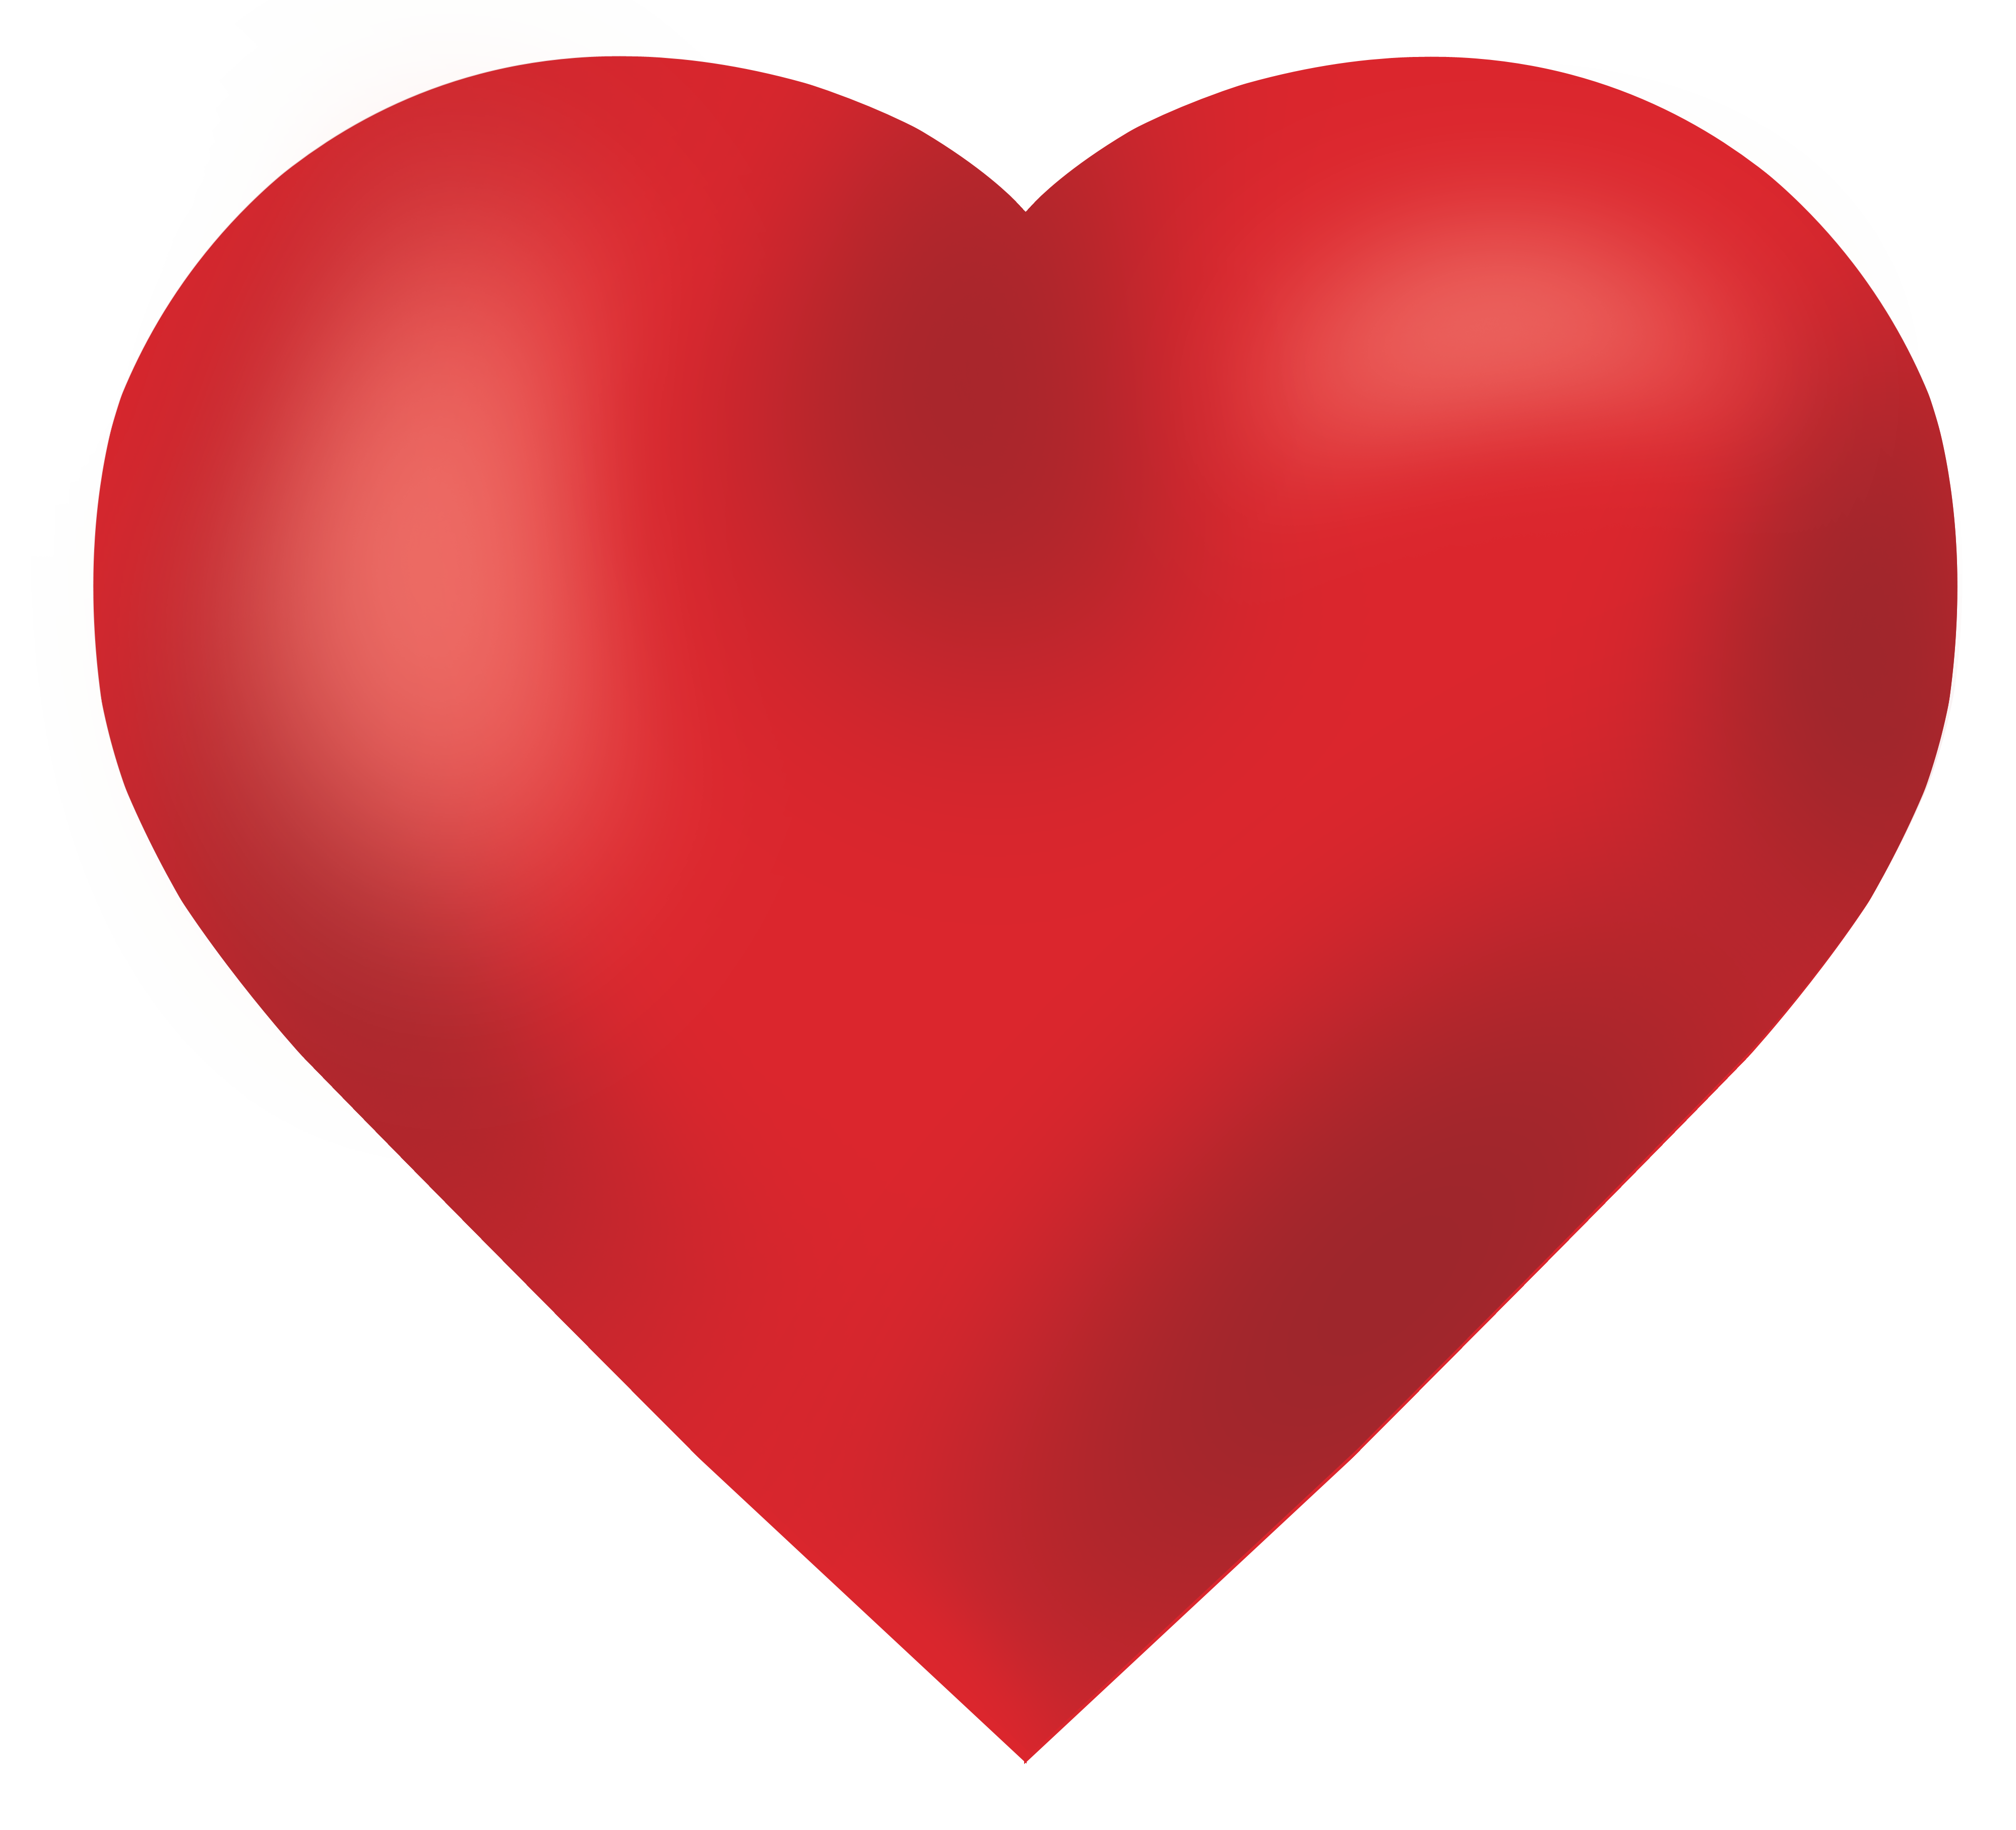 Heart Png Designs